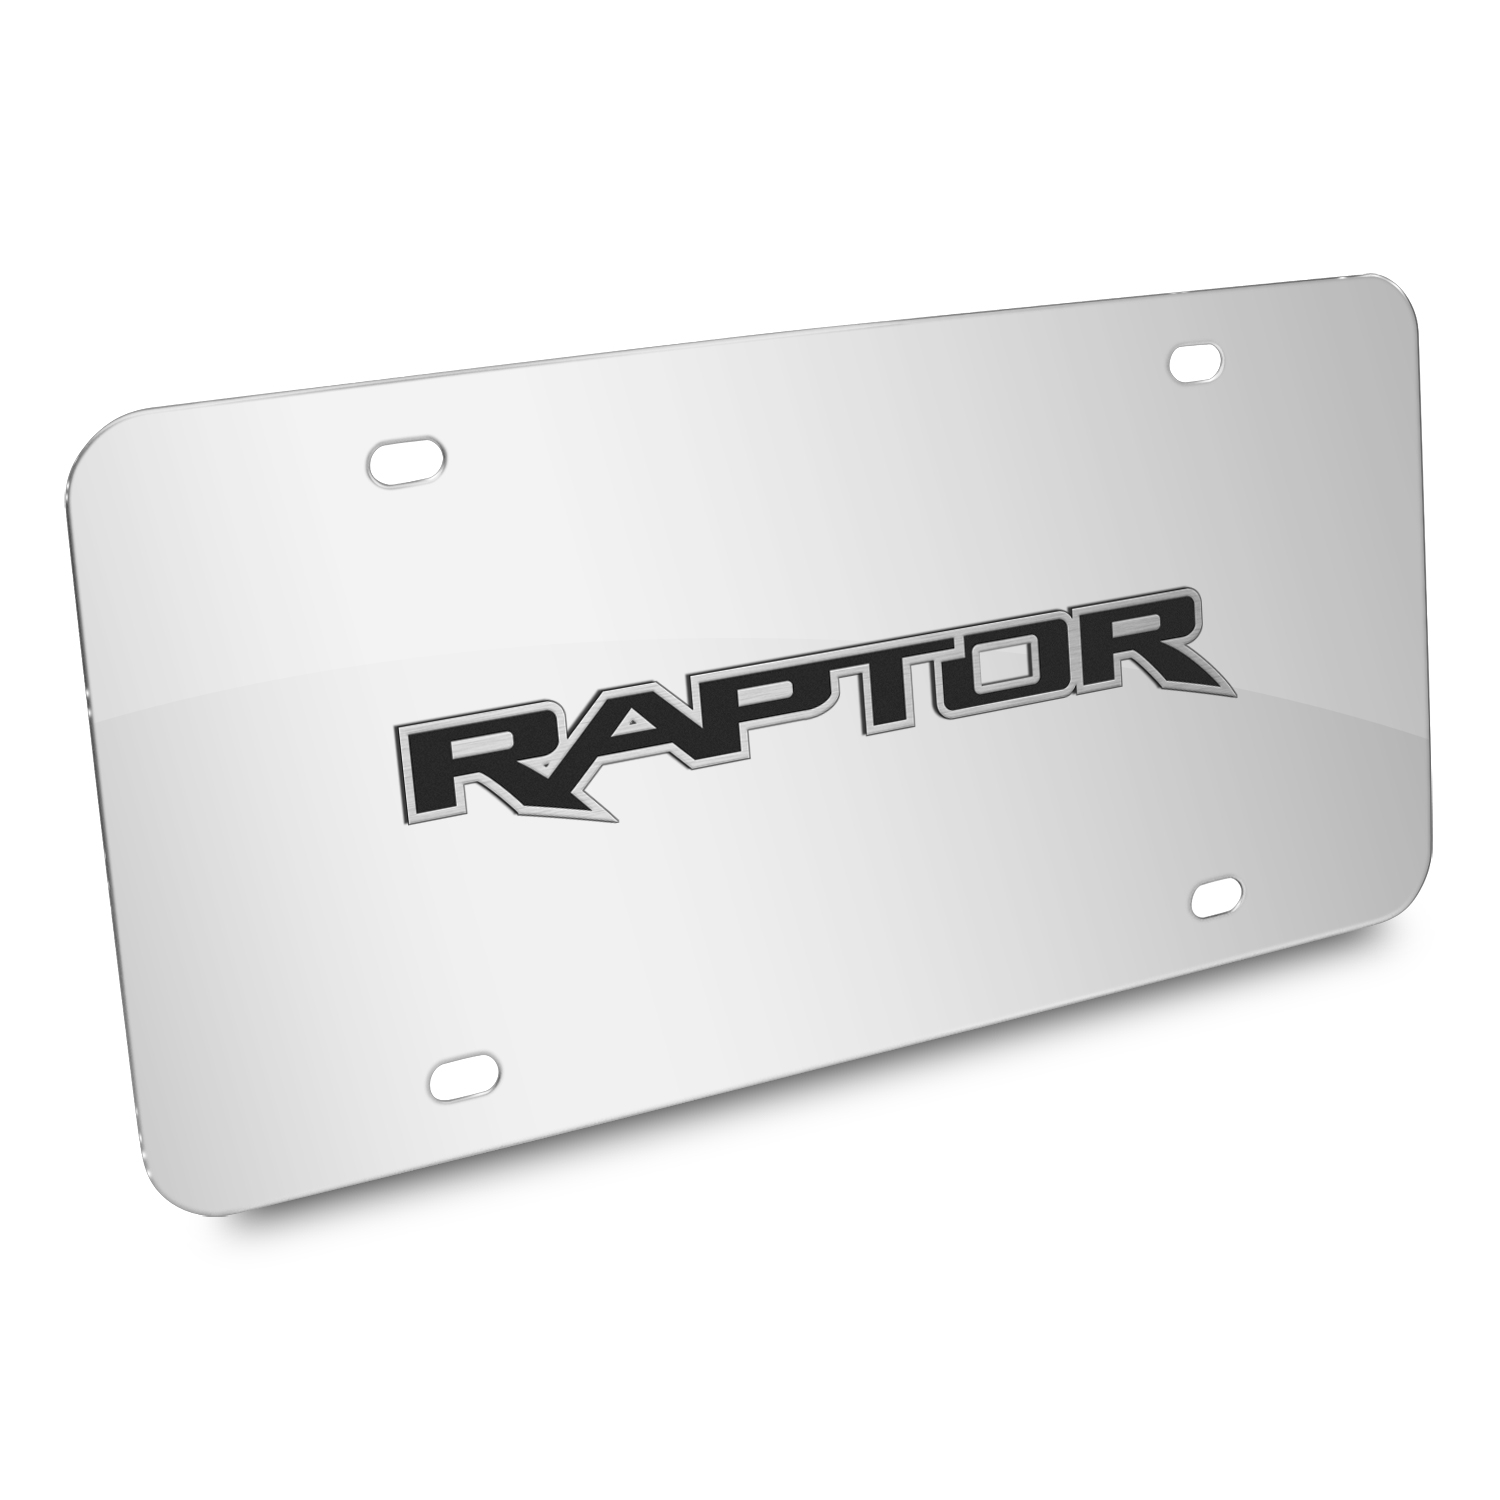 Ford 150 Raptor 3D Mirror Chrome Stainless Steel License Plate